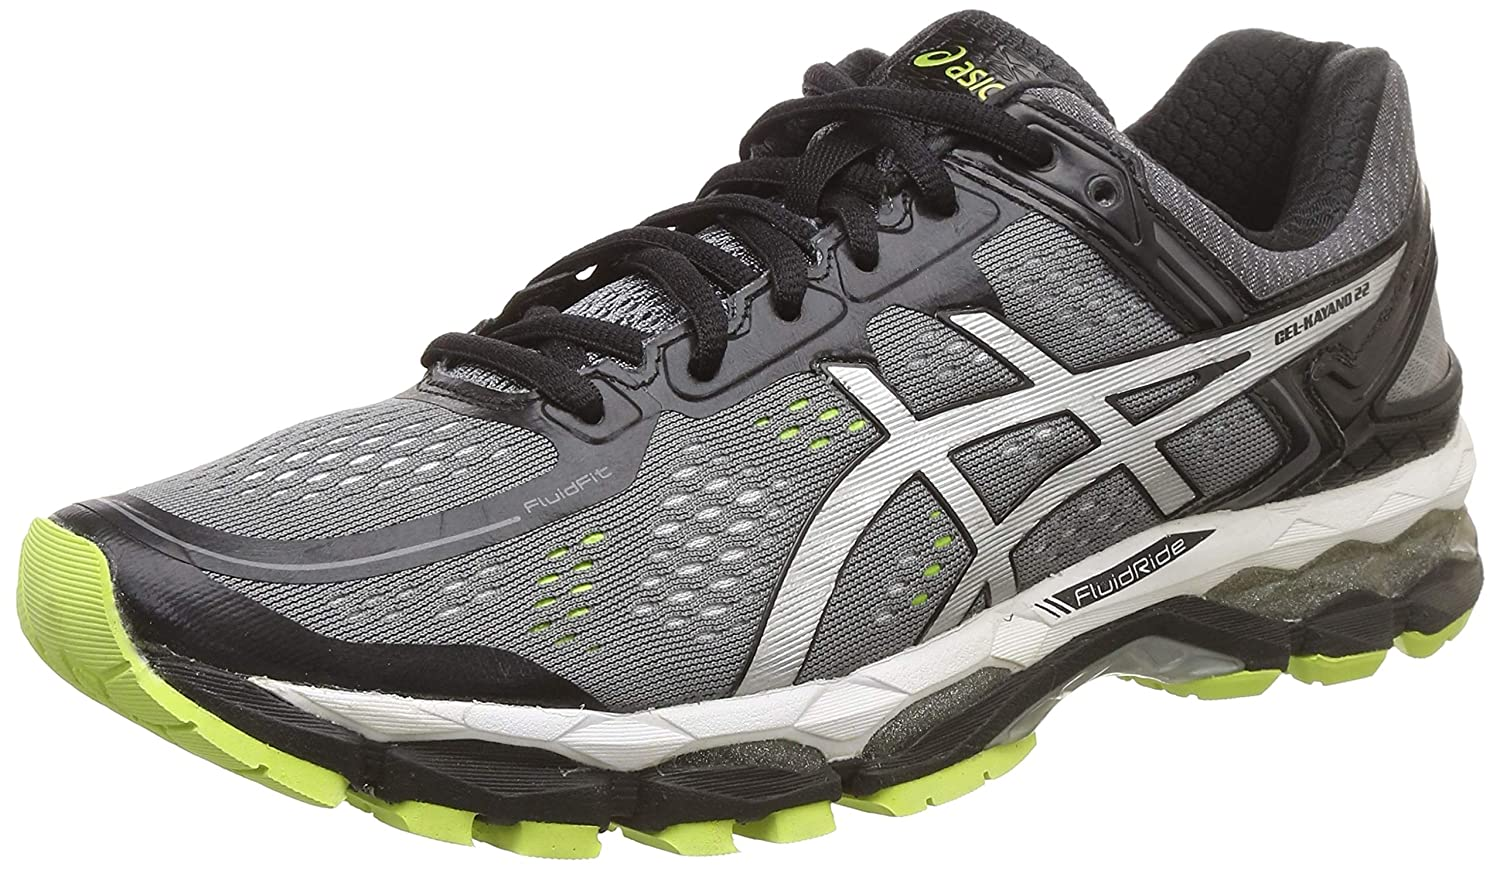 ASICS Men's Gel Kayano 22 Charcoal, Silver And Lime Mesh